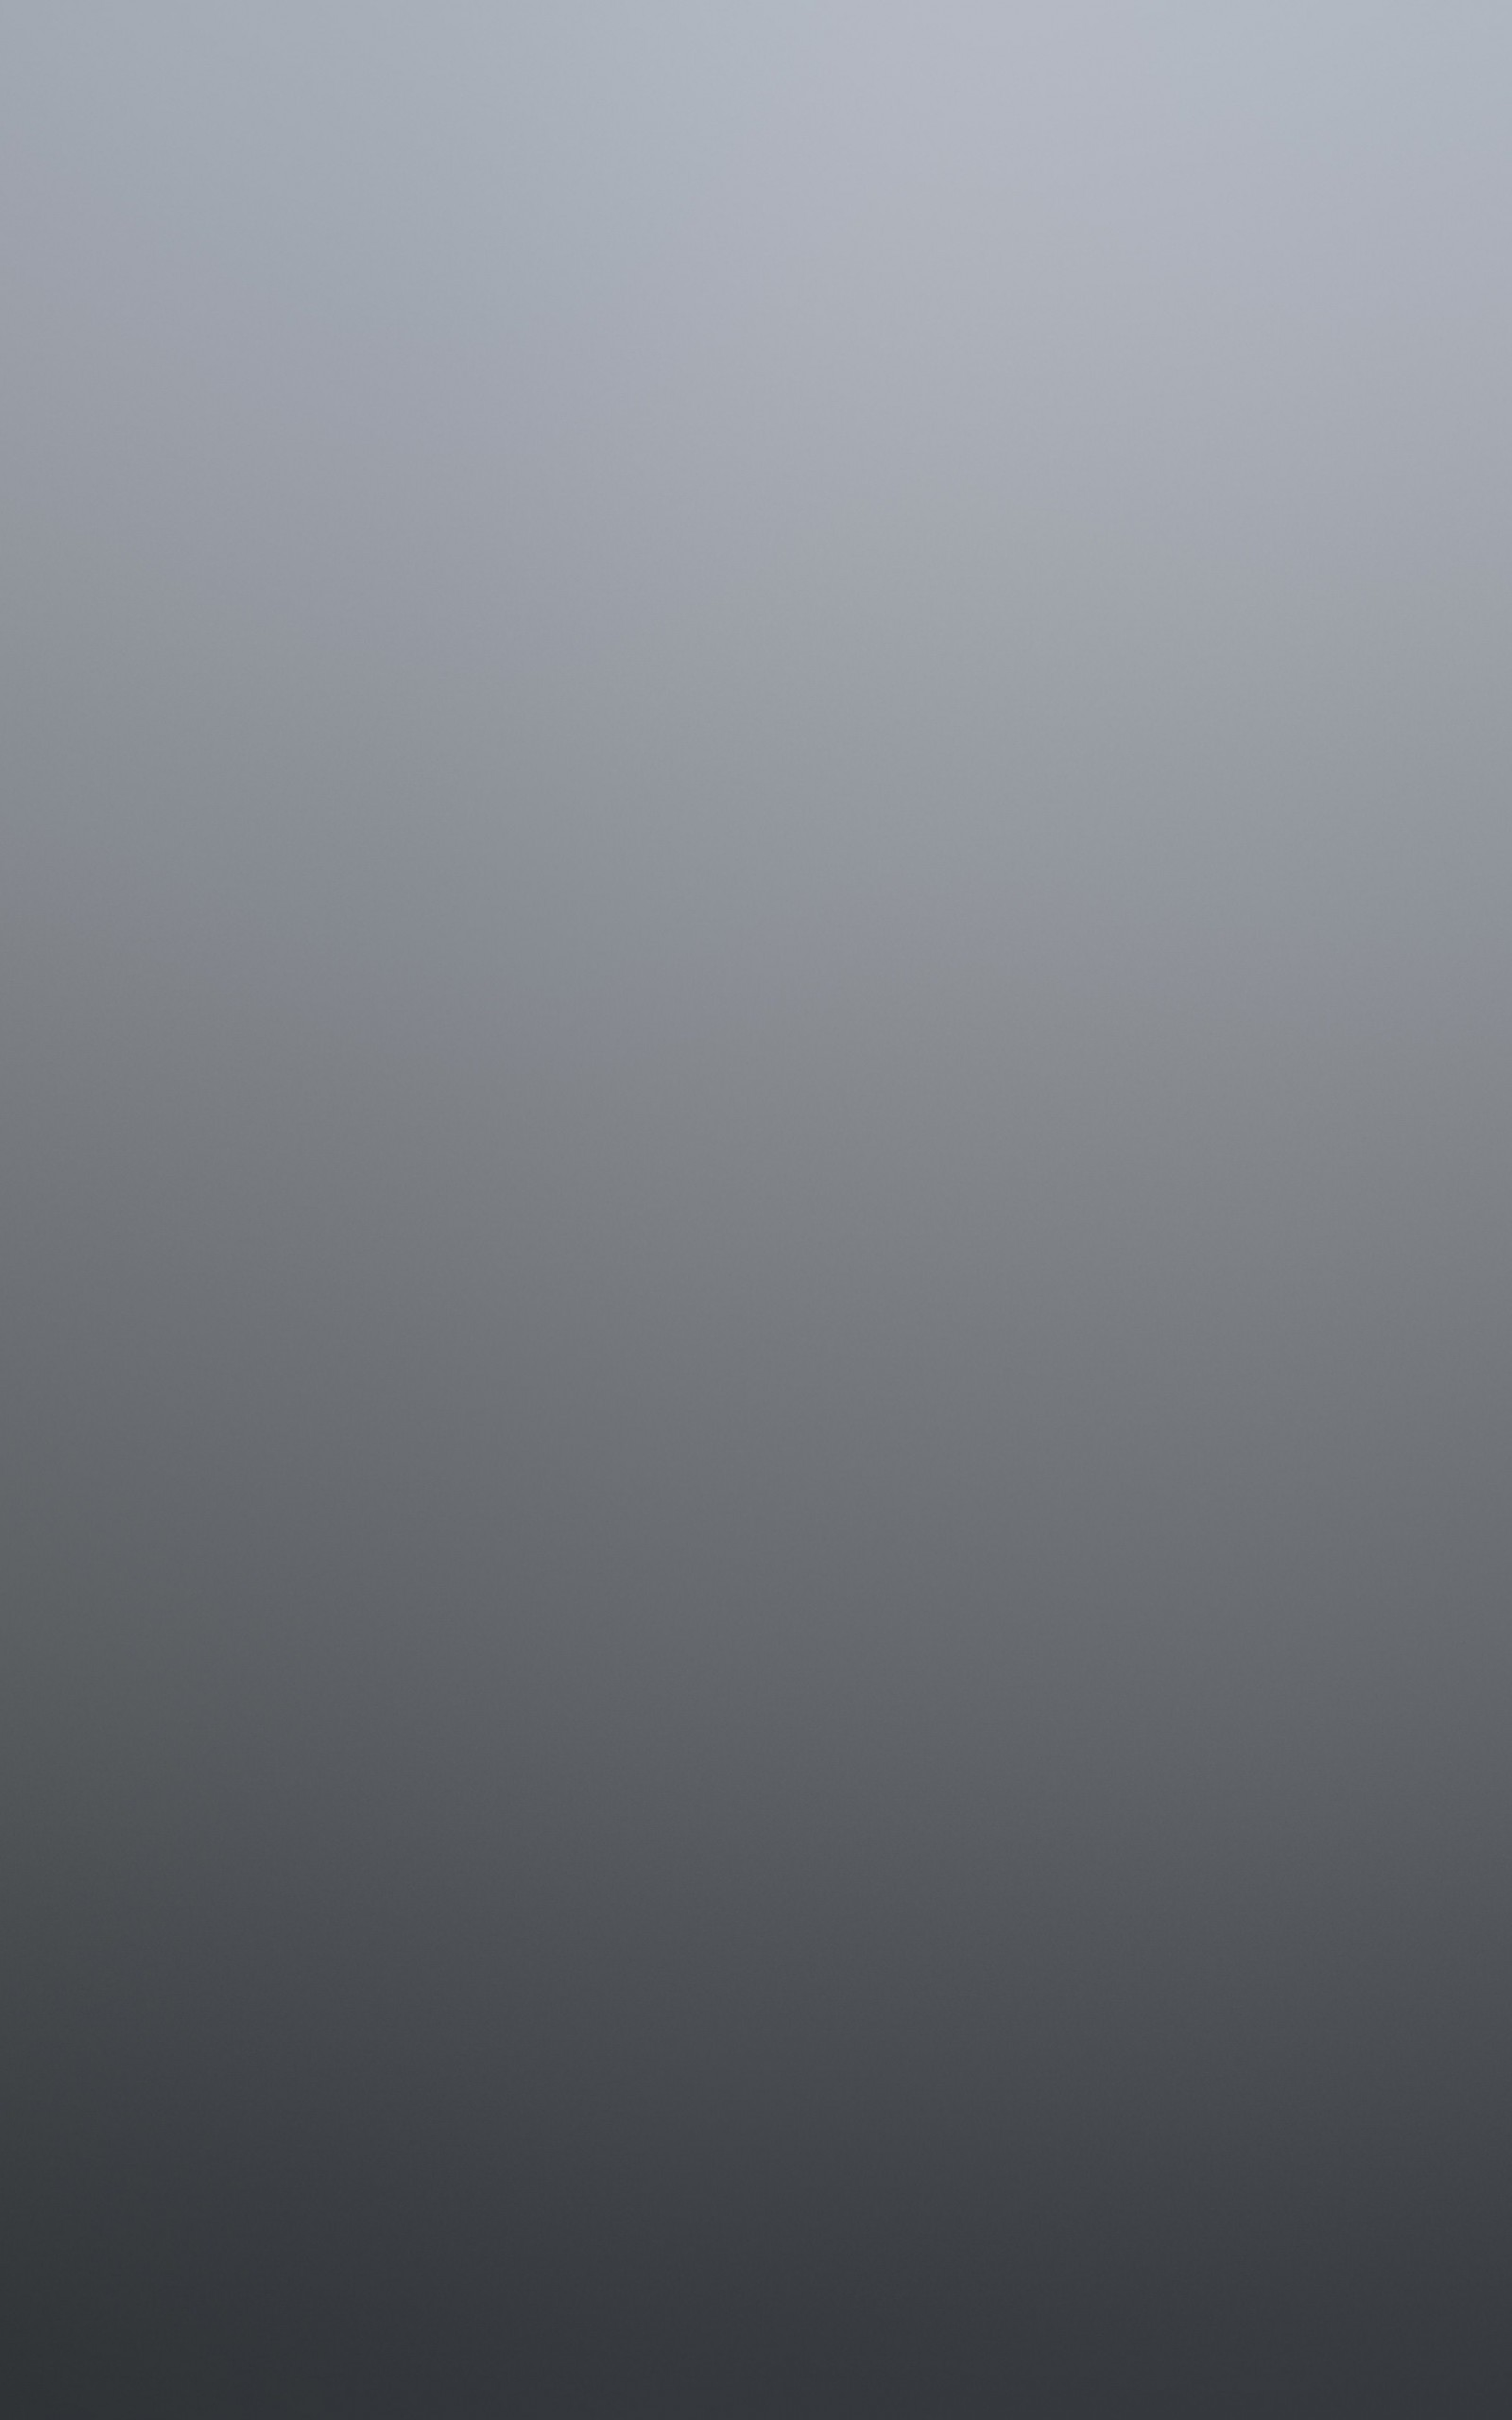 Gradient Grey Wallpaper for Amazon Kindle Fire HDX 8.9